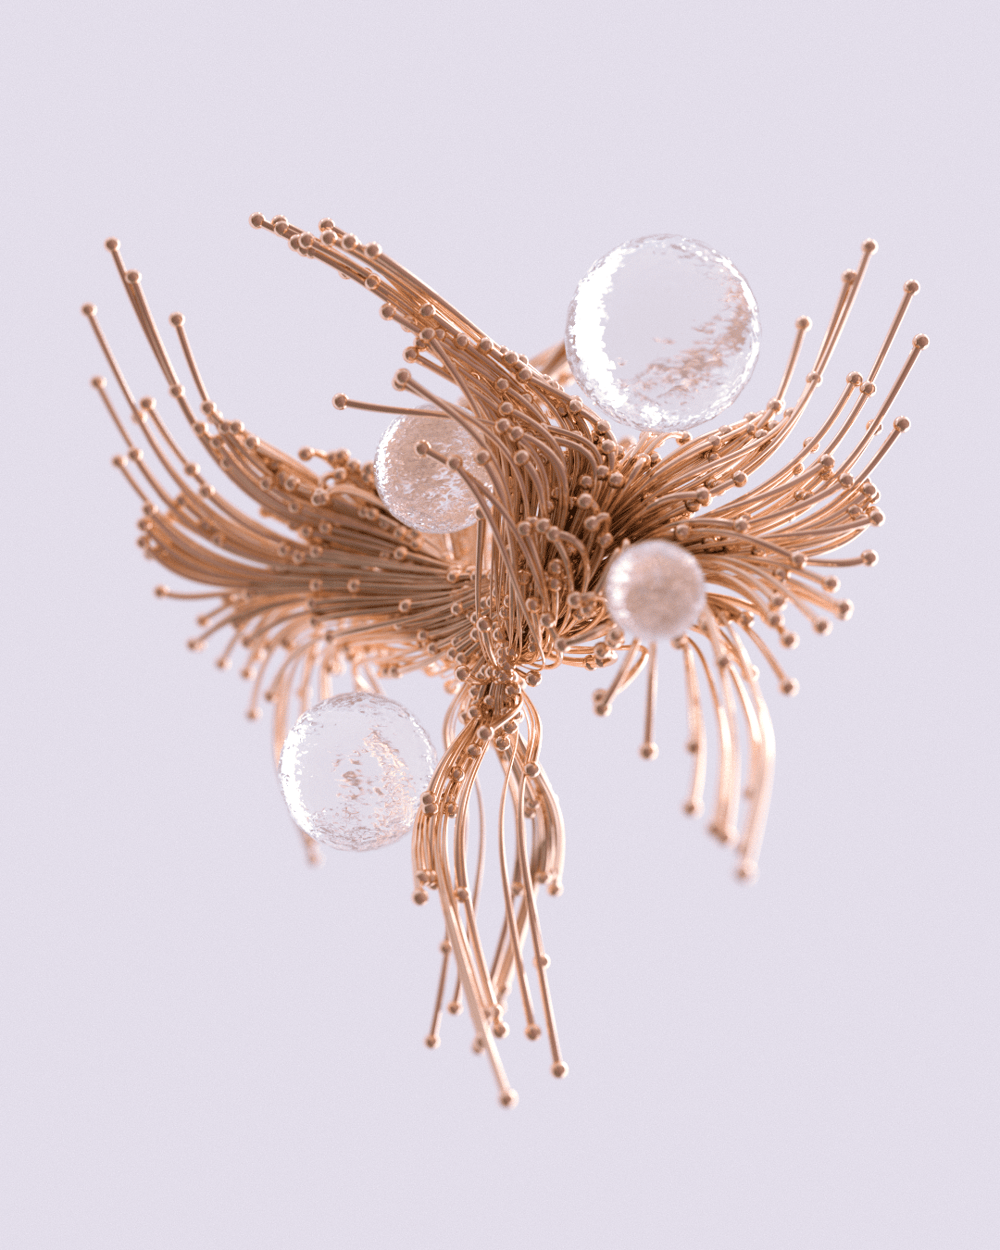 Flowing Tendrils in Redshift - image 1 - student project